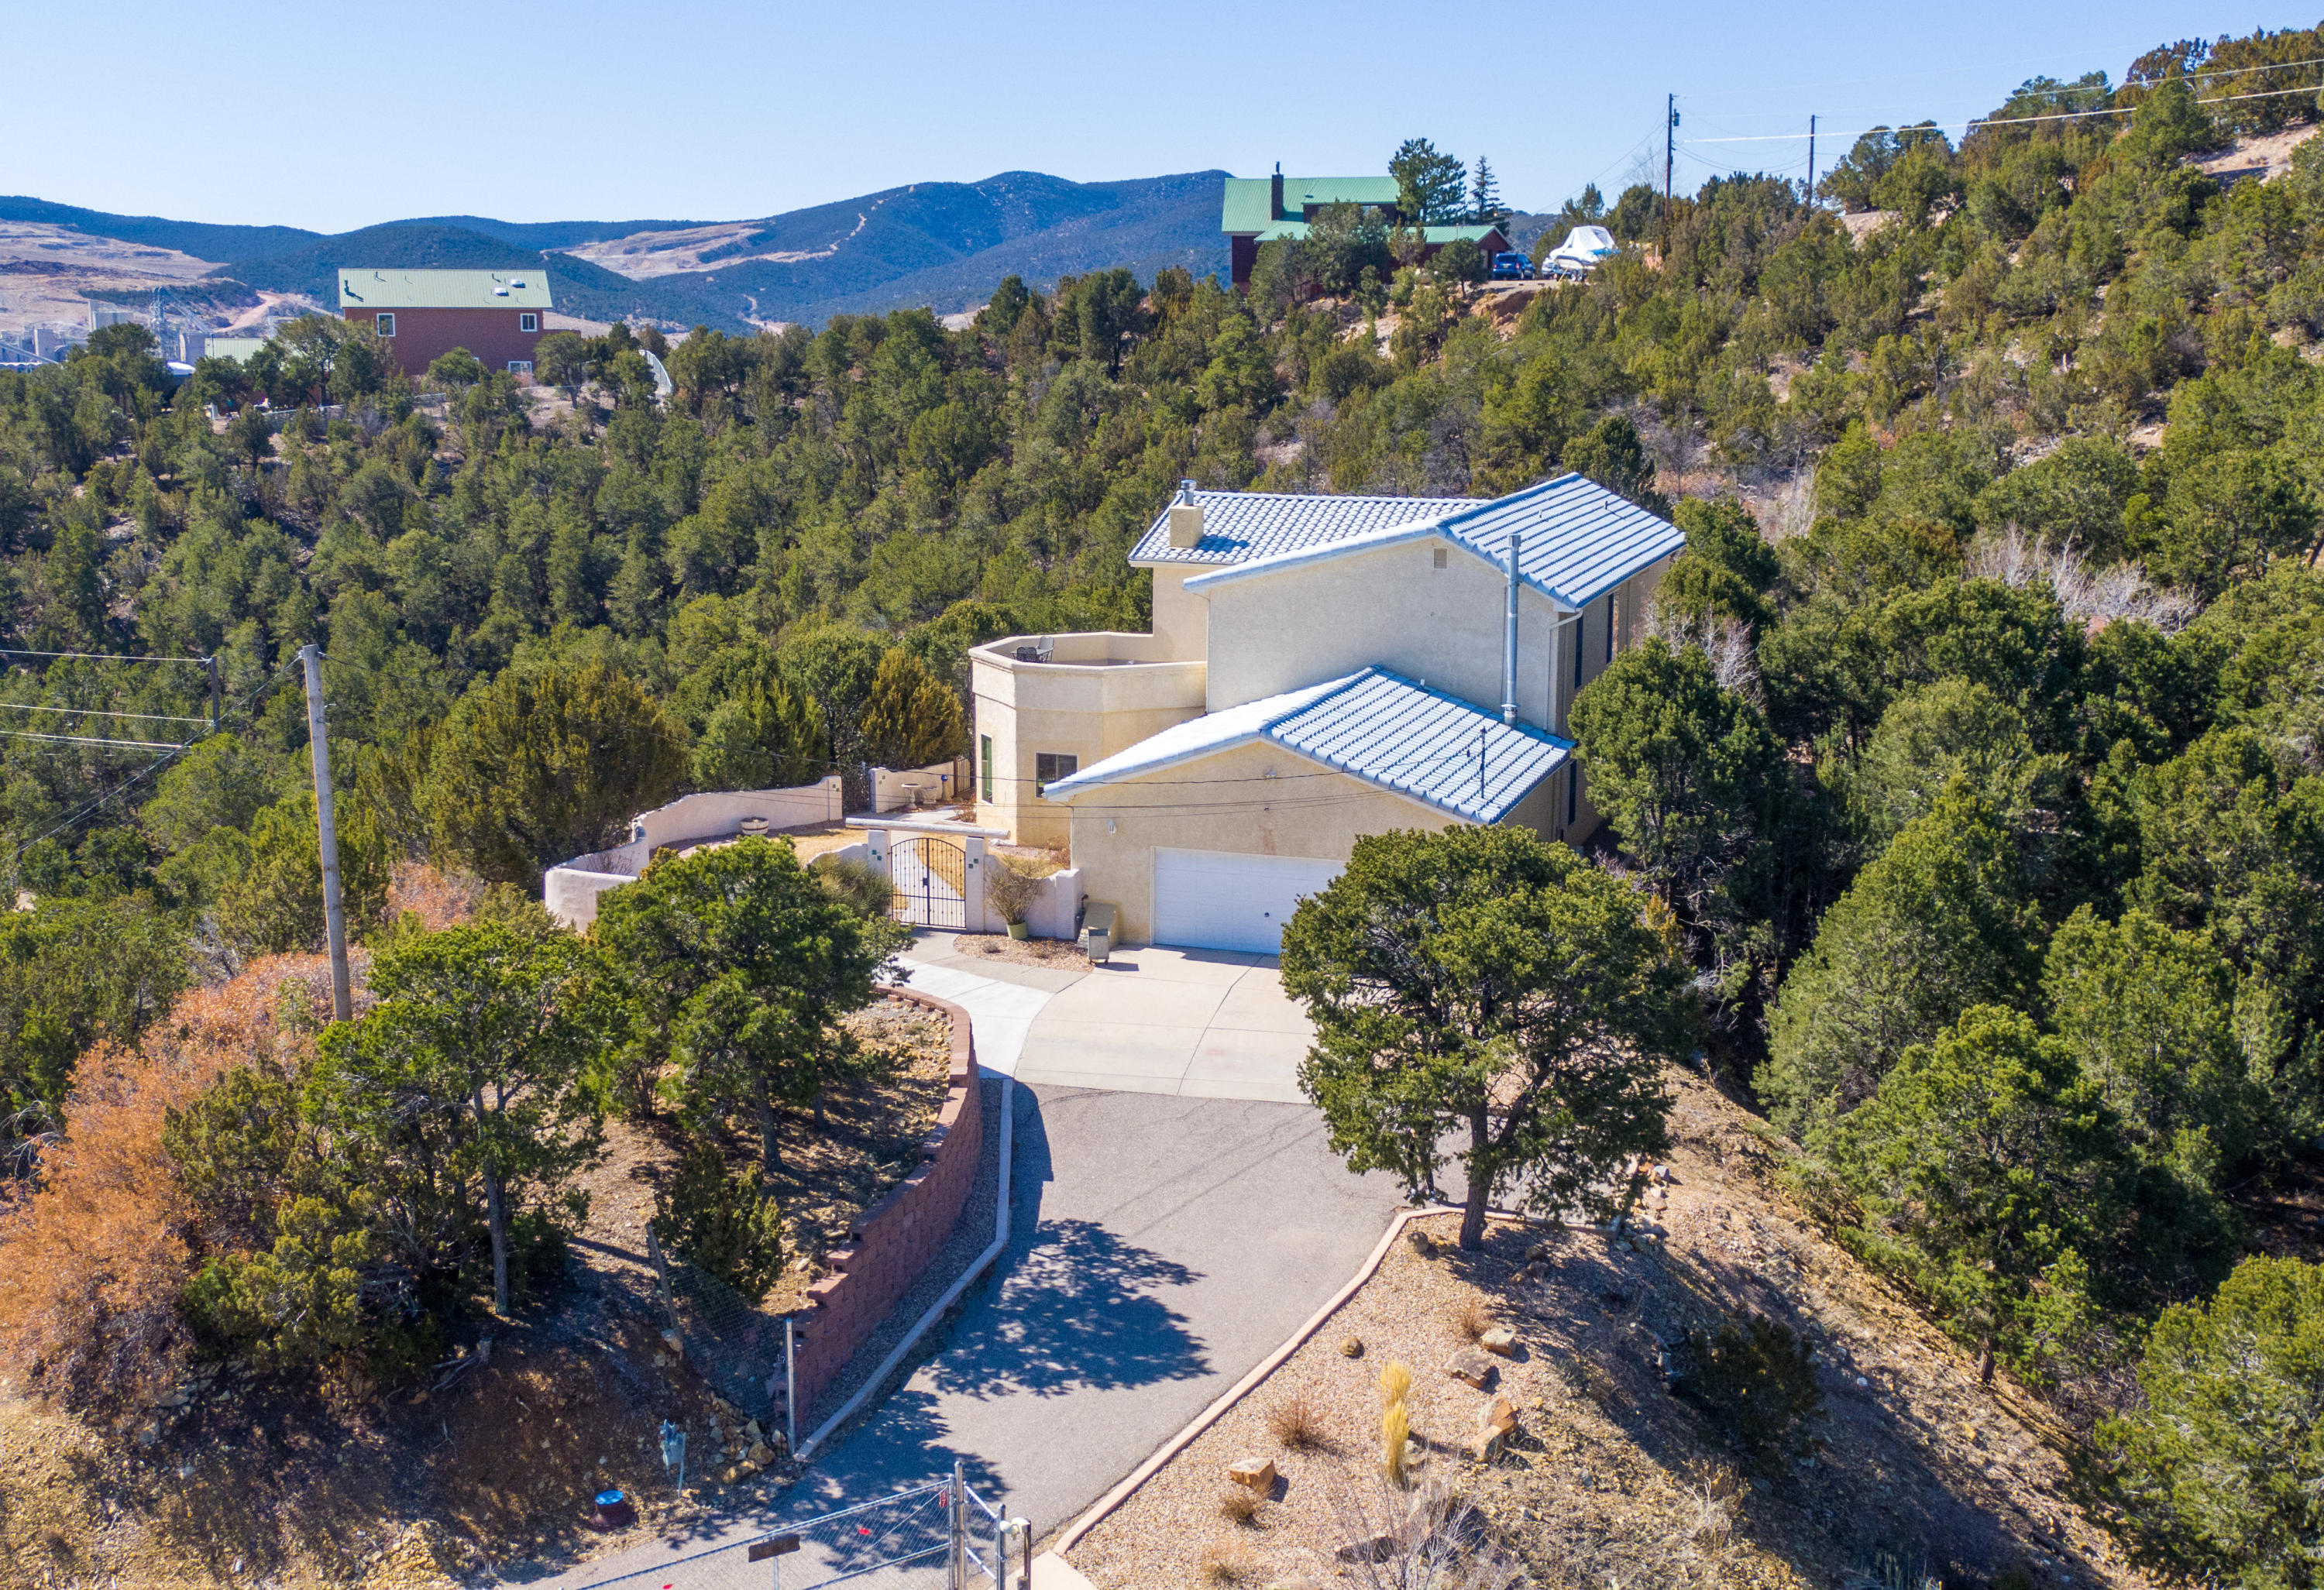 This beautiful mountain retreat is located in the Village of Tijeras & is only 8 minutes East of ABQ. The home sits on over 2 acres & is completely fenced in offering 360 views! Walk in & enjoy the grand stair case & vaulted ceilings. The home has an updated kitchen with gorgeous knotty cabinets, stainless steel appliances, corian counter tops & plenty of storage/pantry space. Upstairs is a master retreat with 2 lofts, his & her closets, free standing tub, double sinks, a makeup vanity & its own balcony! The yard is landscaped with garden beds & grass areas that are hooked up with automatic sprinklers/bubble & a Tuff shed. Notable features: central vacuum, over-sized garage, refrigerated air, tile roof, a wood burning stove, kiva fireplace, and newer windows/doors from Renewal by Anderson!